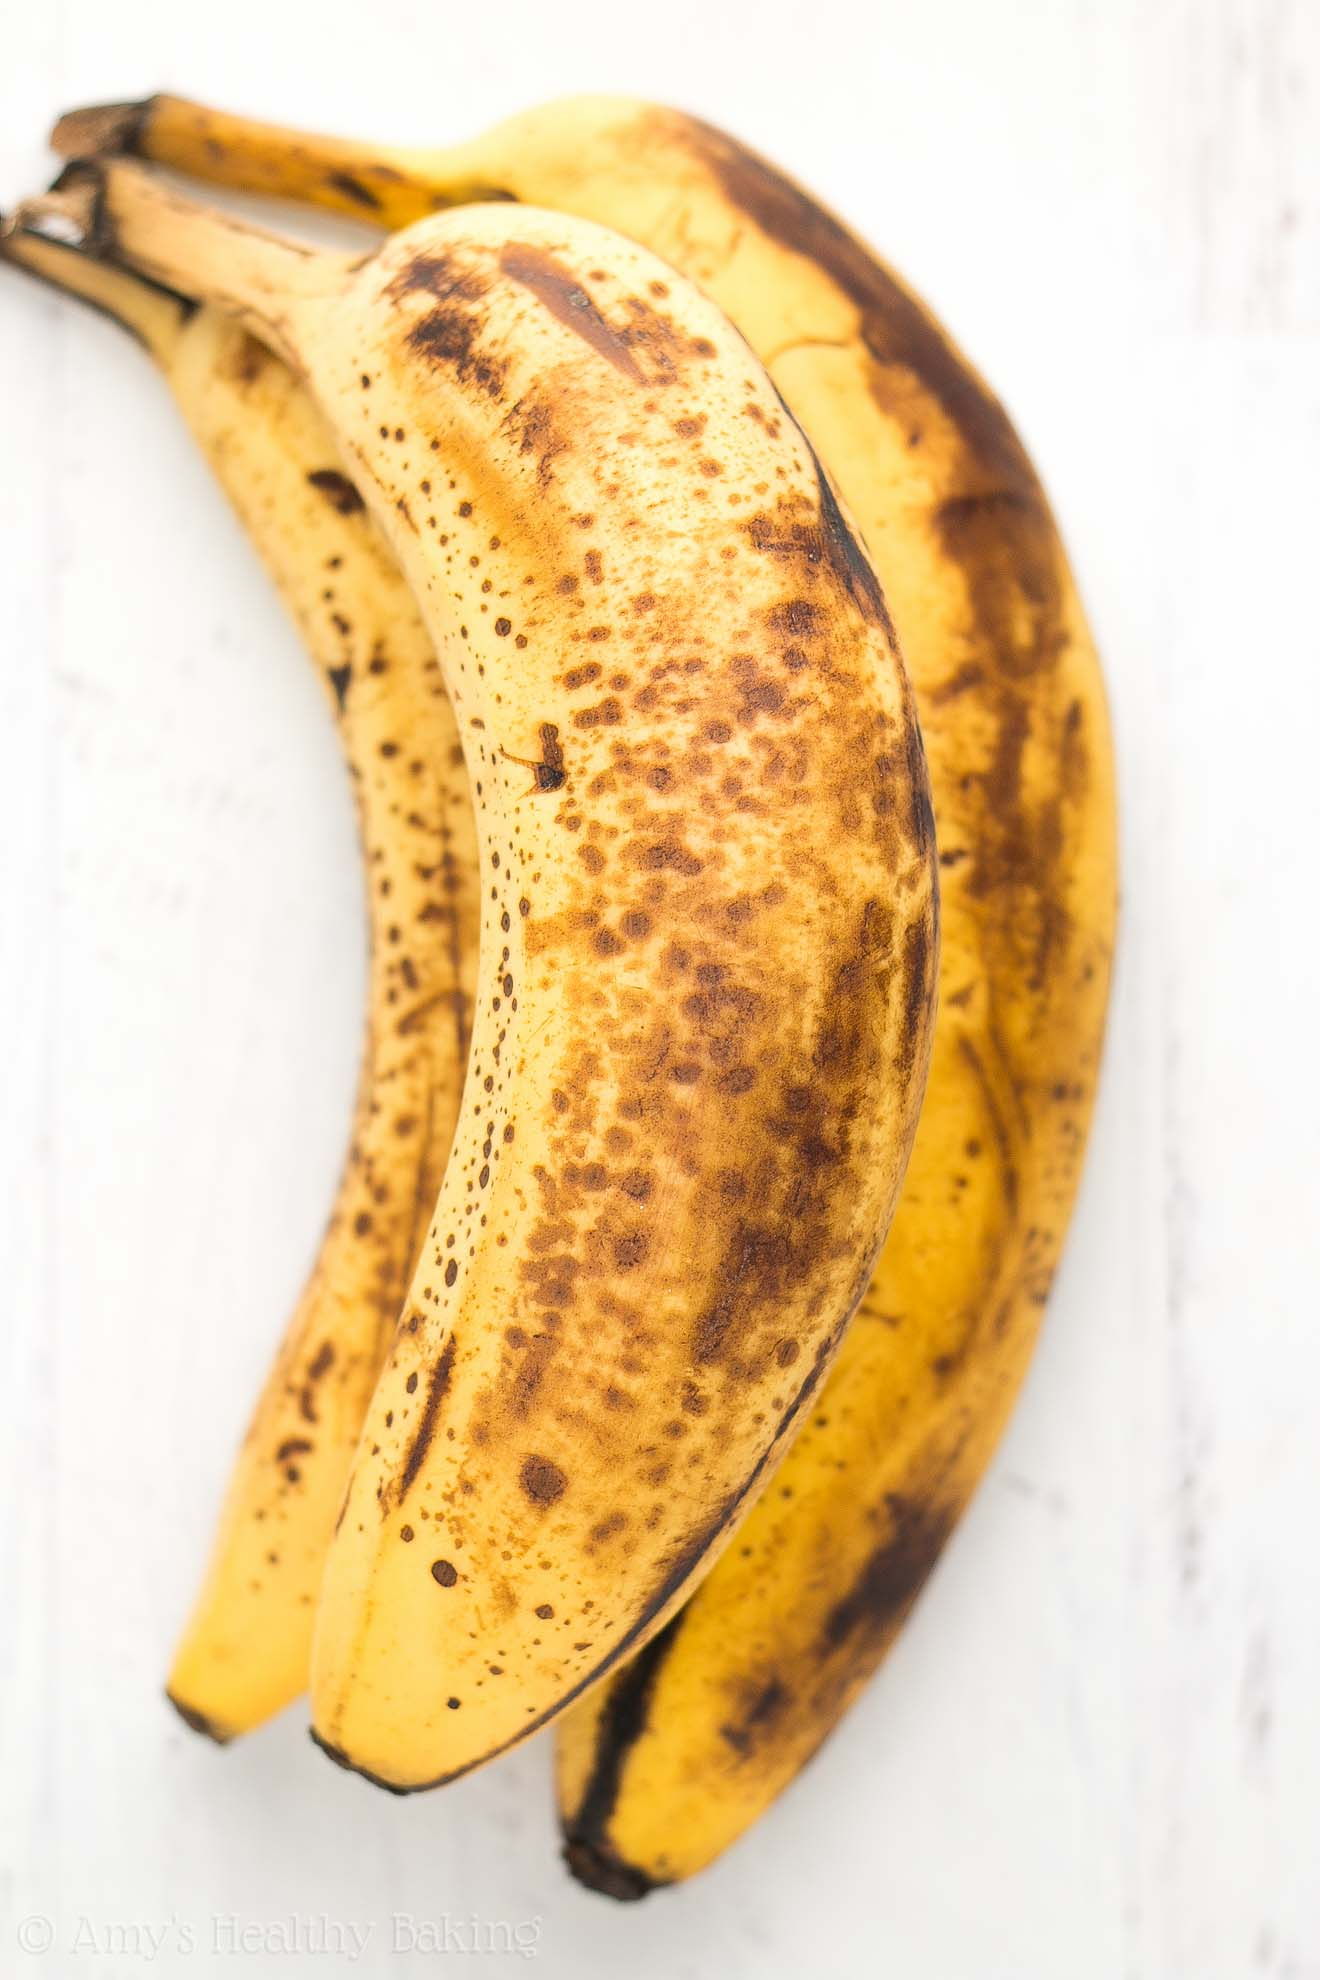 Ripe bananas -- perfect for baking! Love all of @amybakeshealthy's yummy & healthy banana recipes!